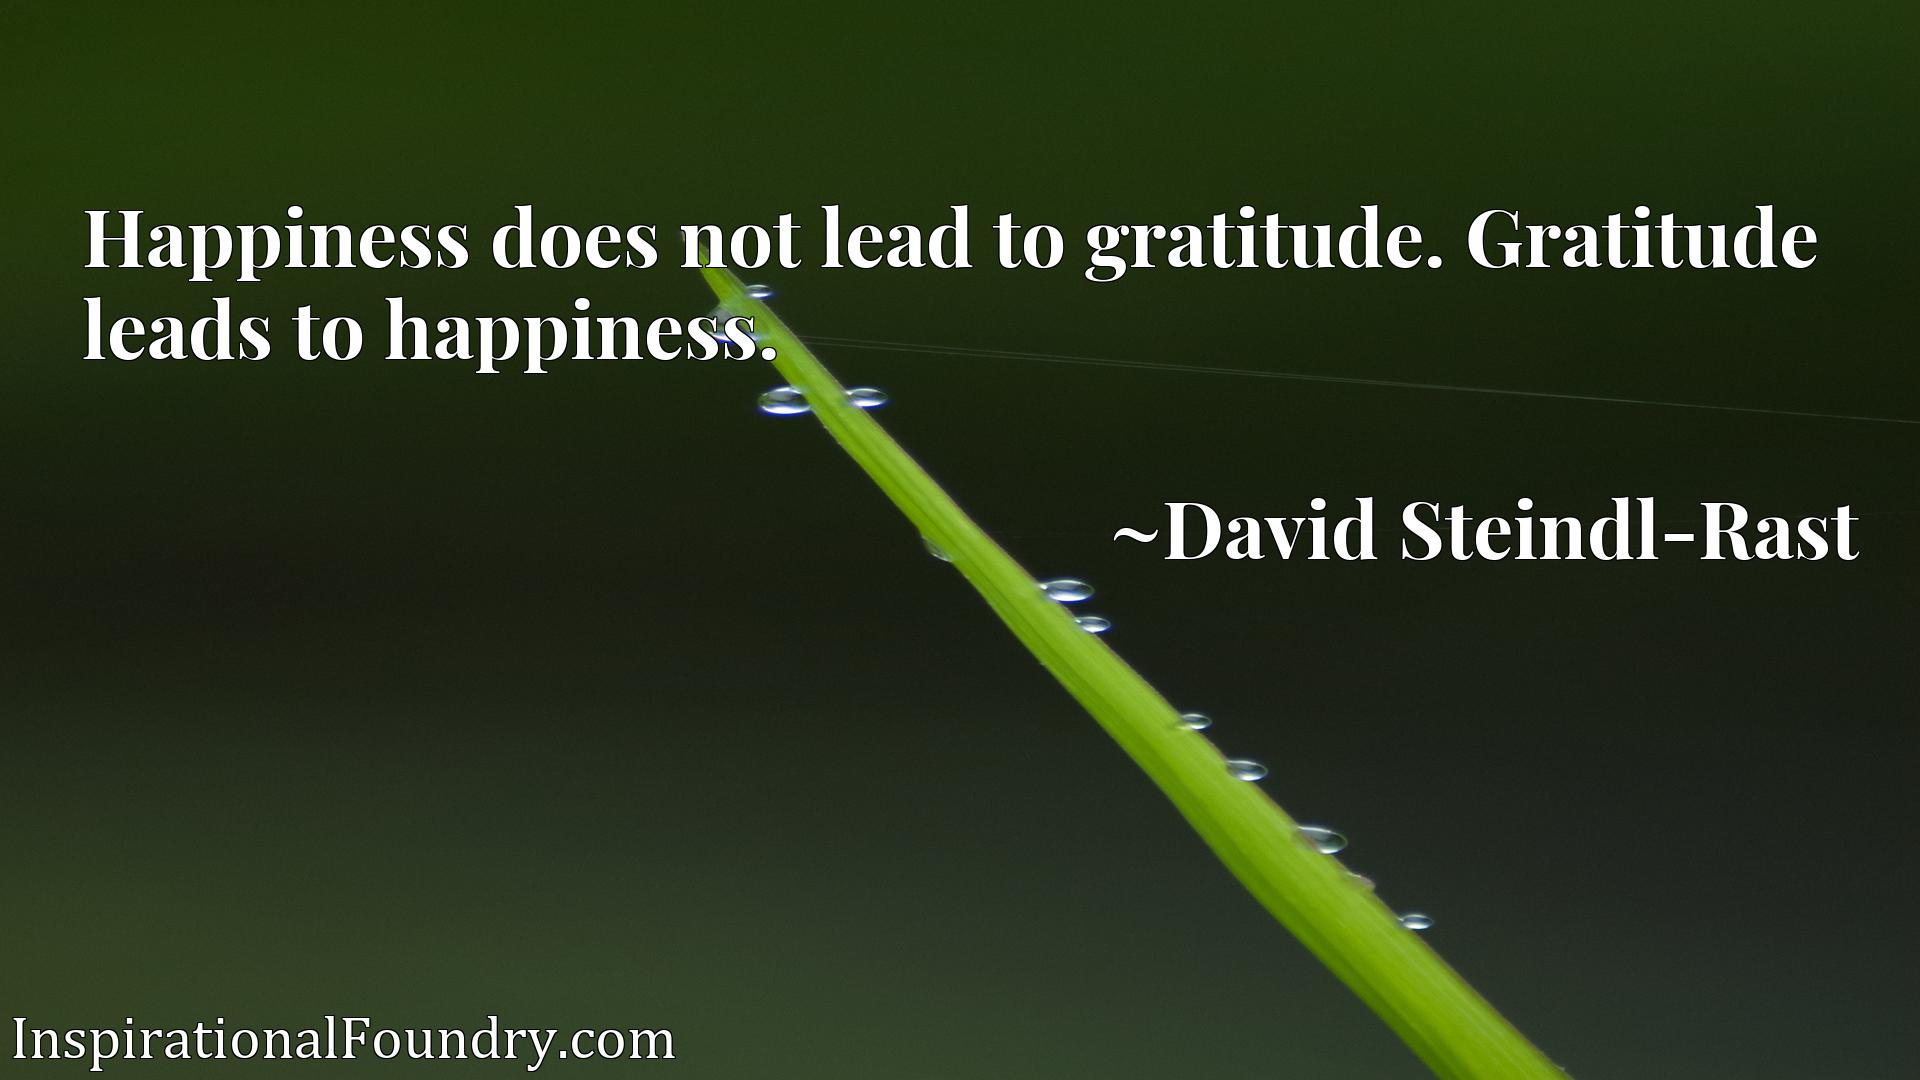 Happiness does not lead to gratitude. Gratitude leads to happiness.